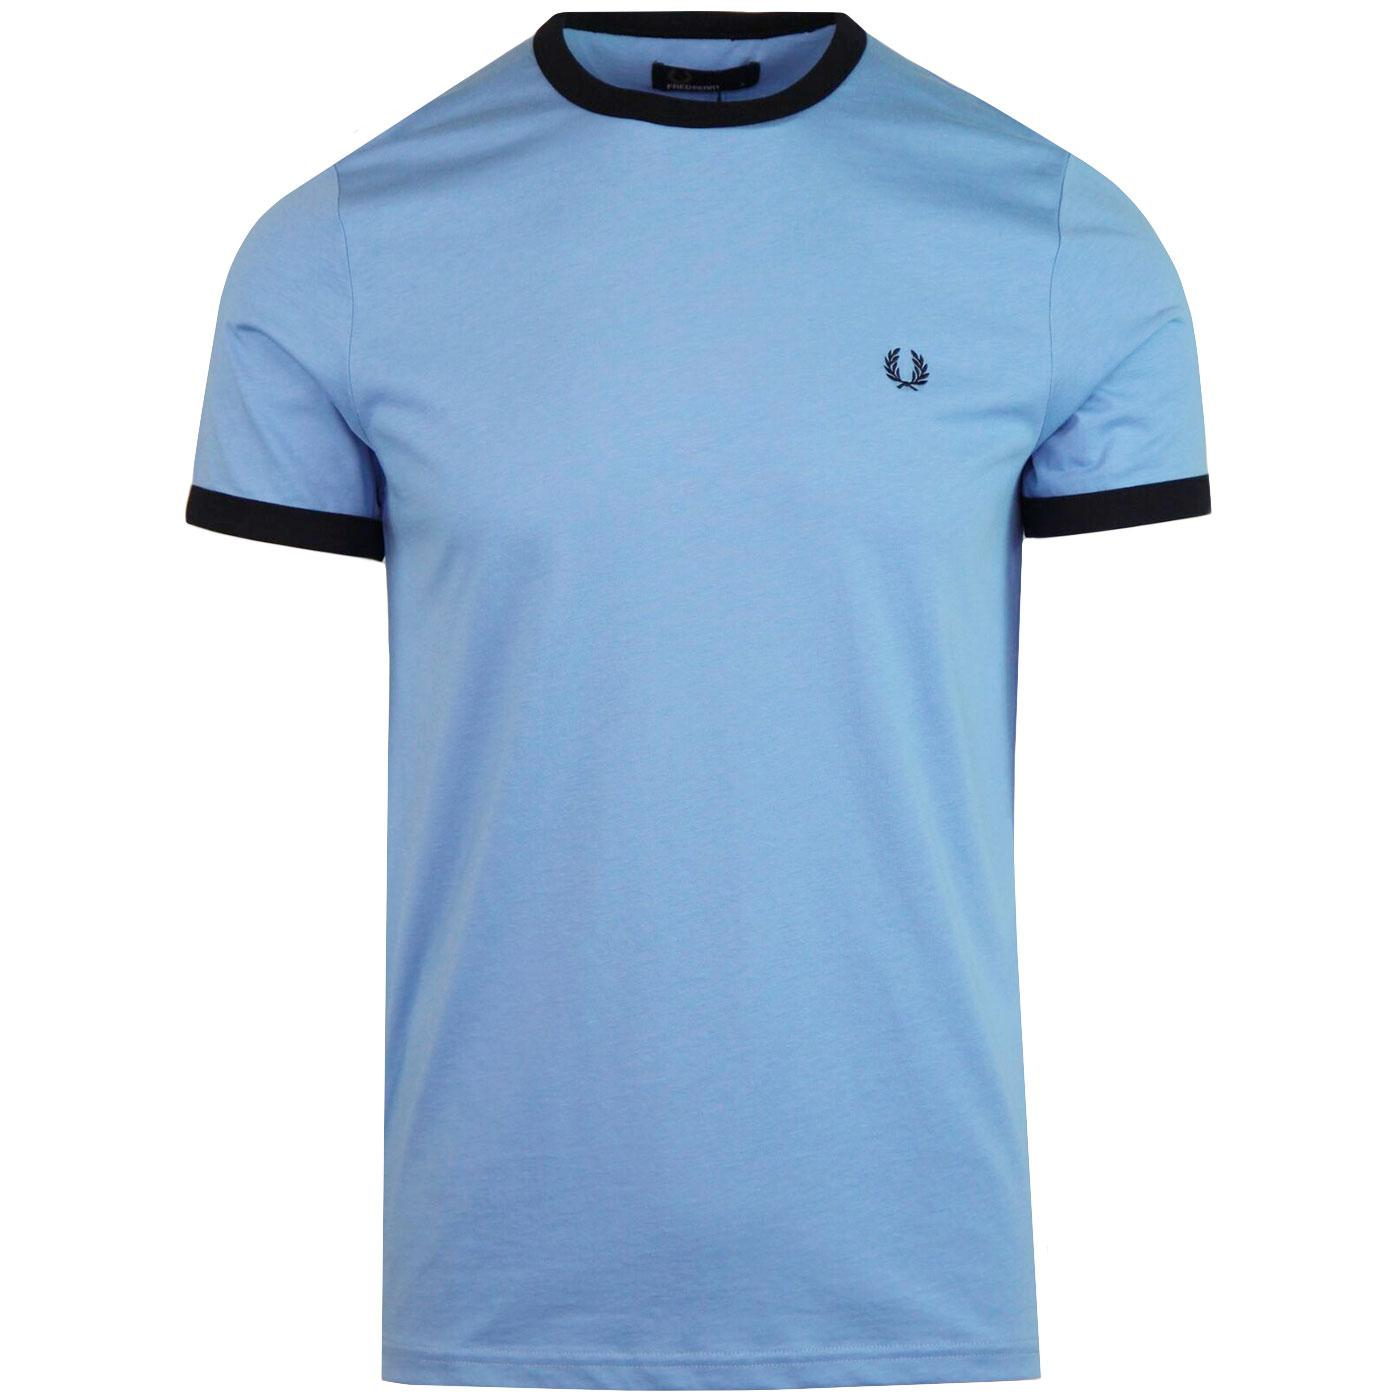 FRED PERRY Retro Mod Crew Neck Ringer T-shirt SKY